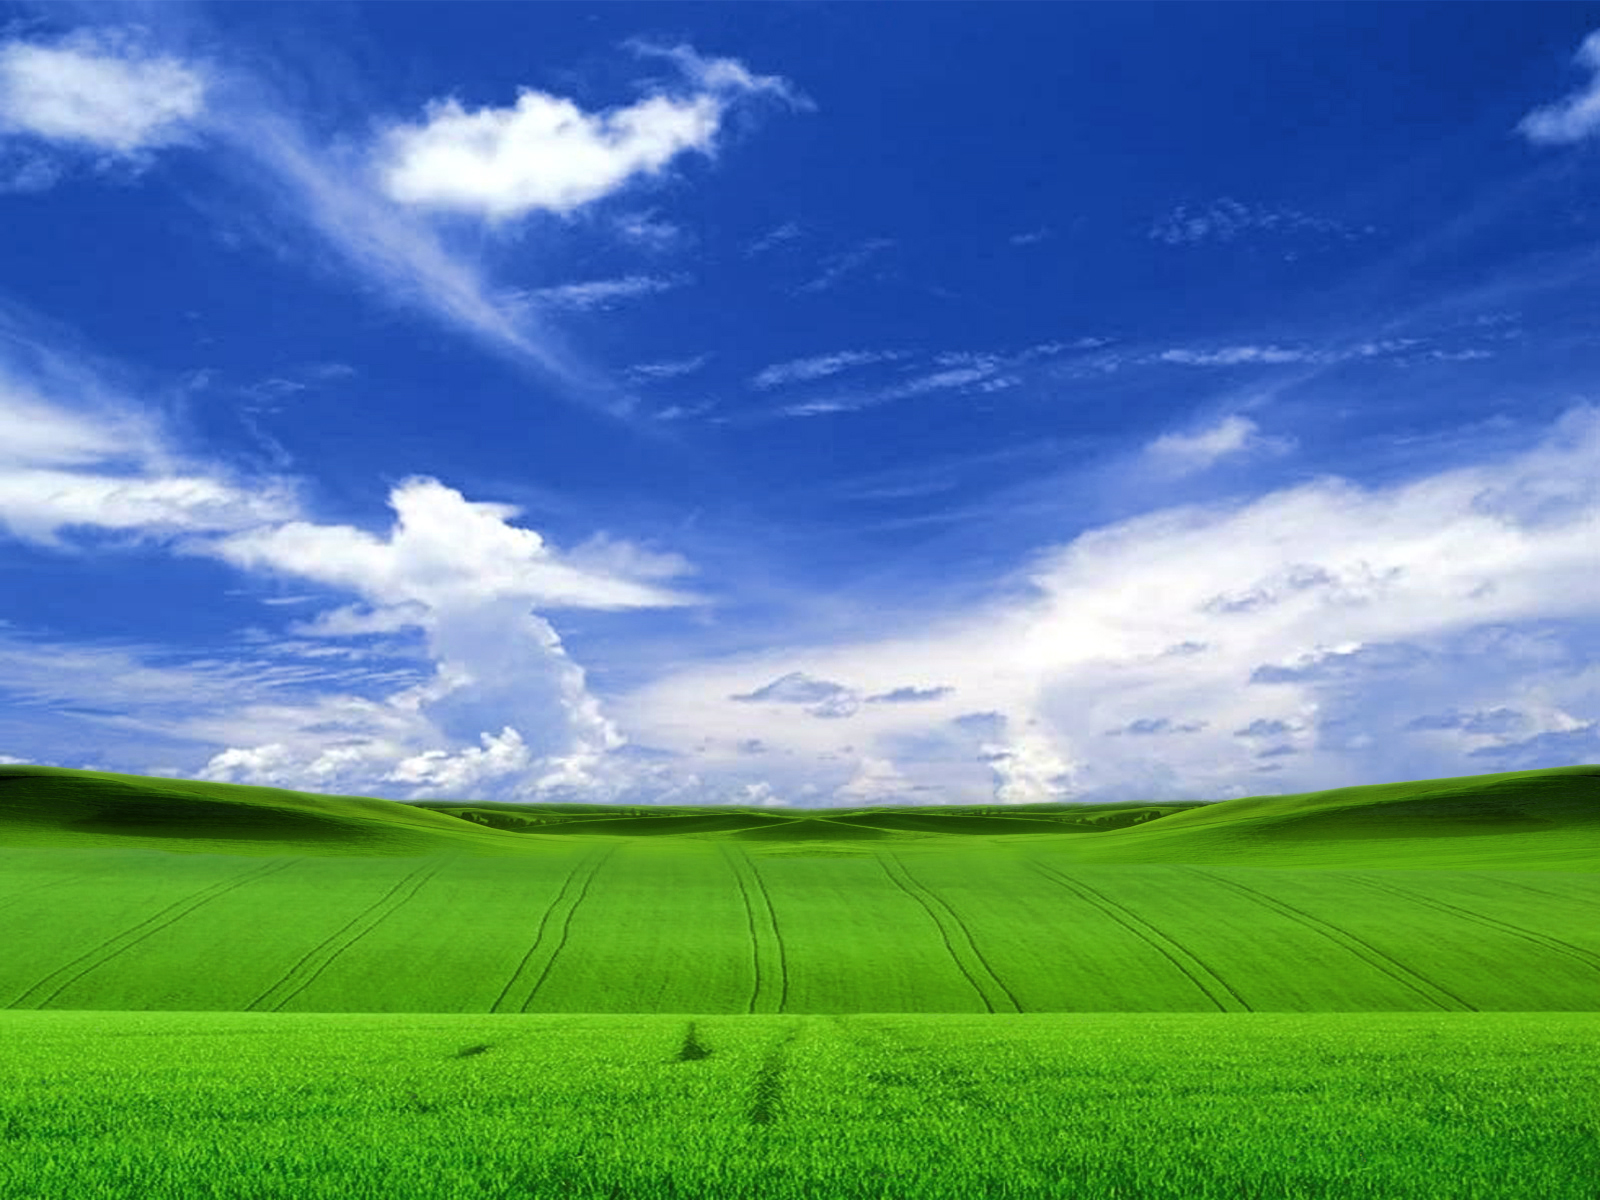 free 3d windows xp wallpapersvistanatureanimalsfun